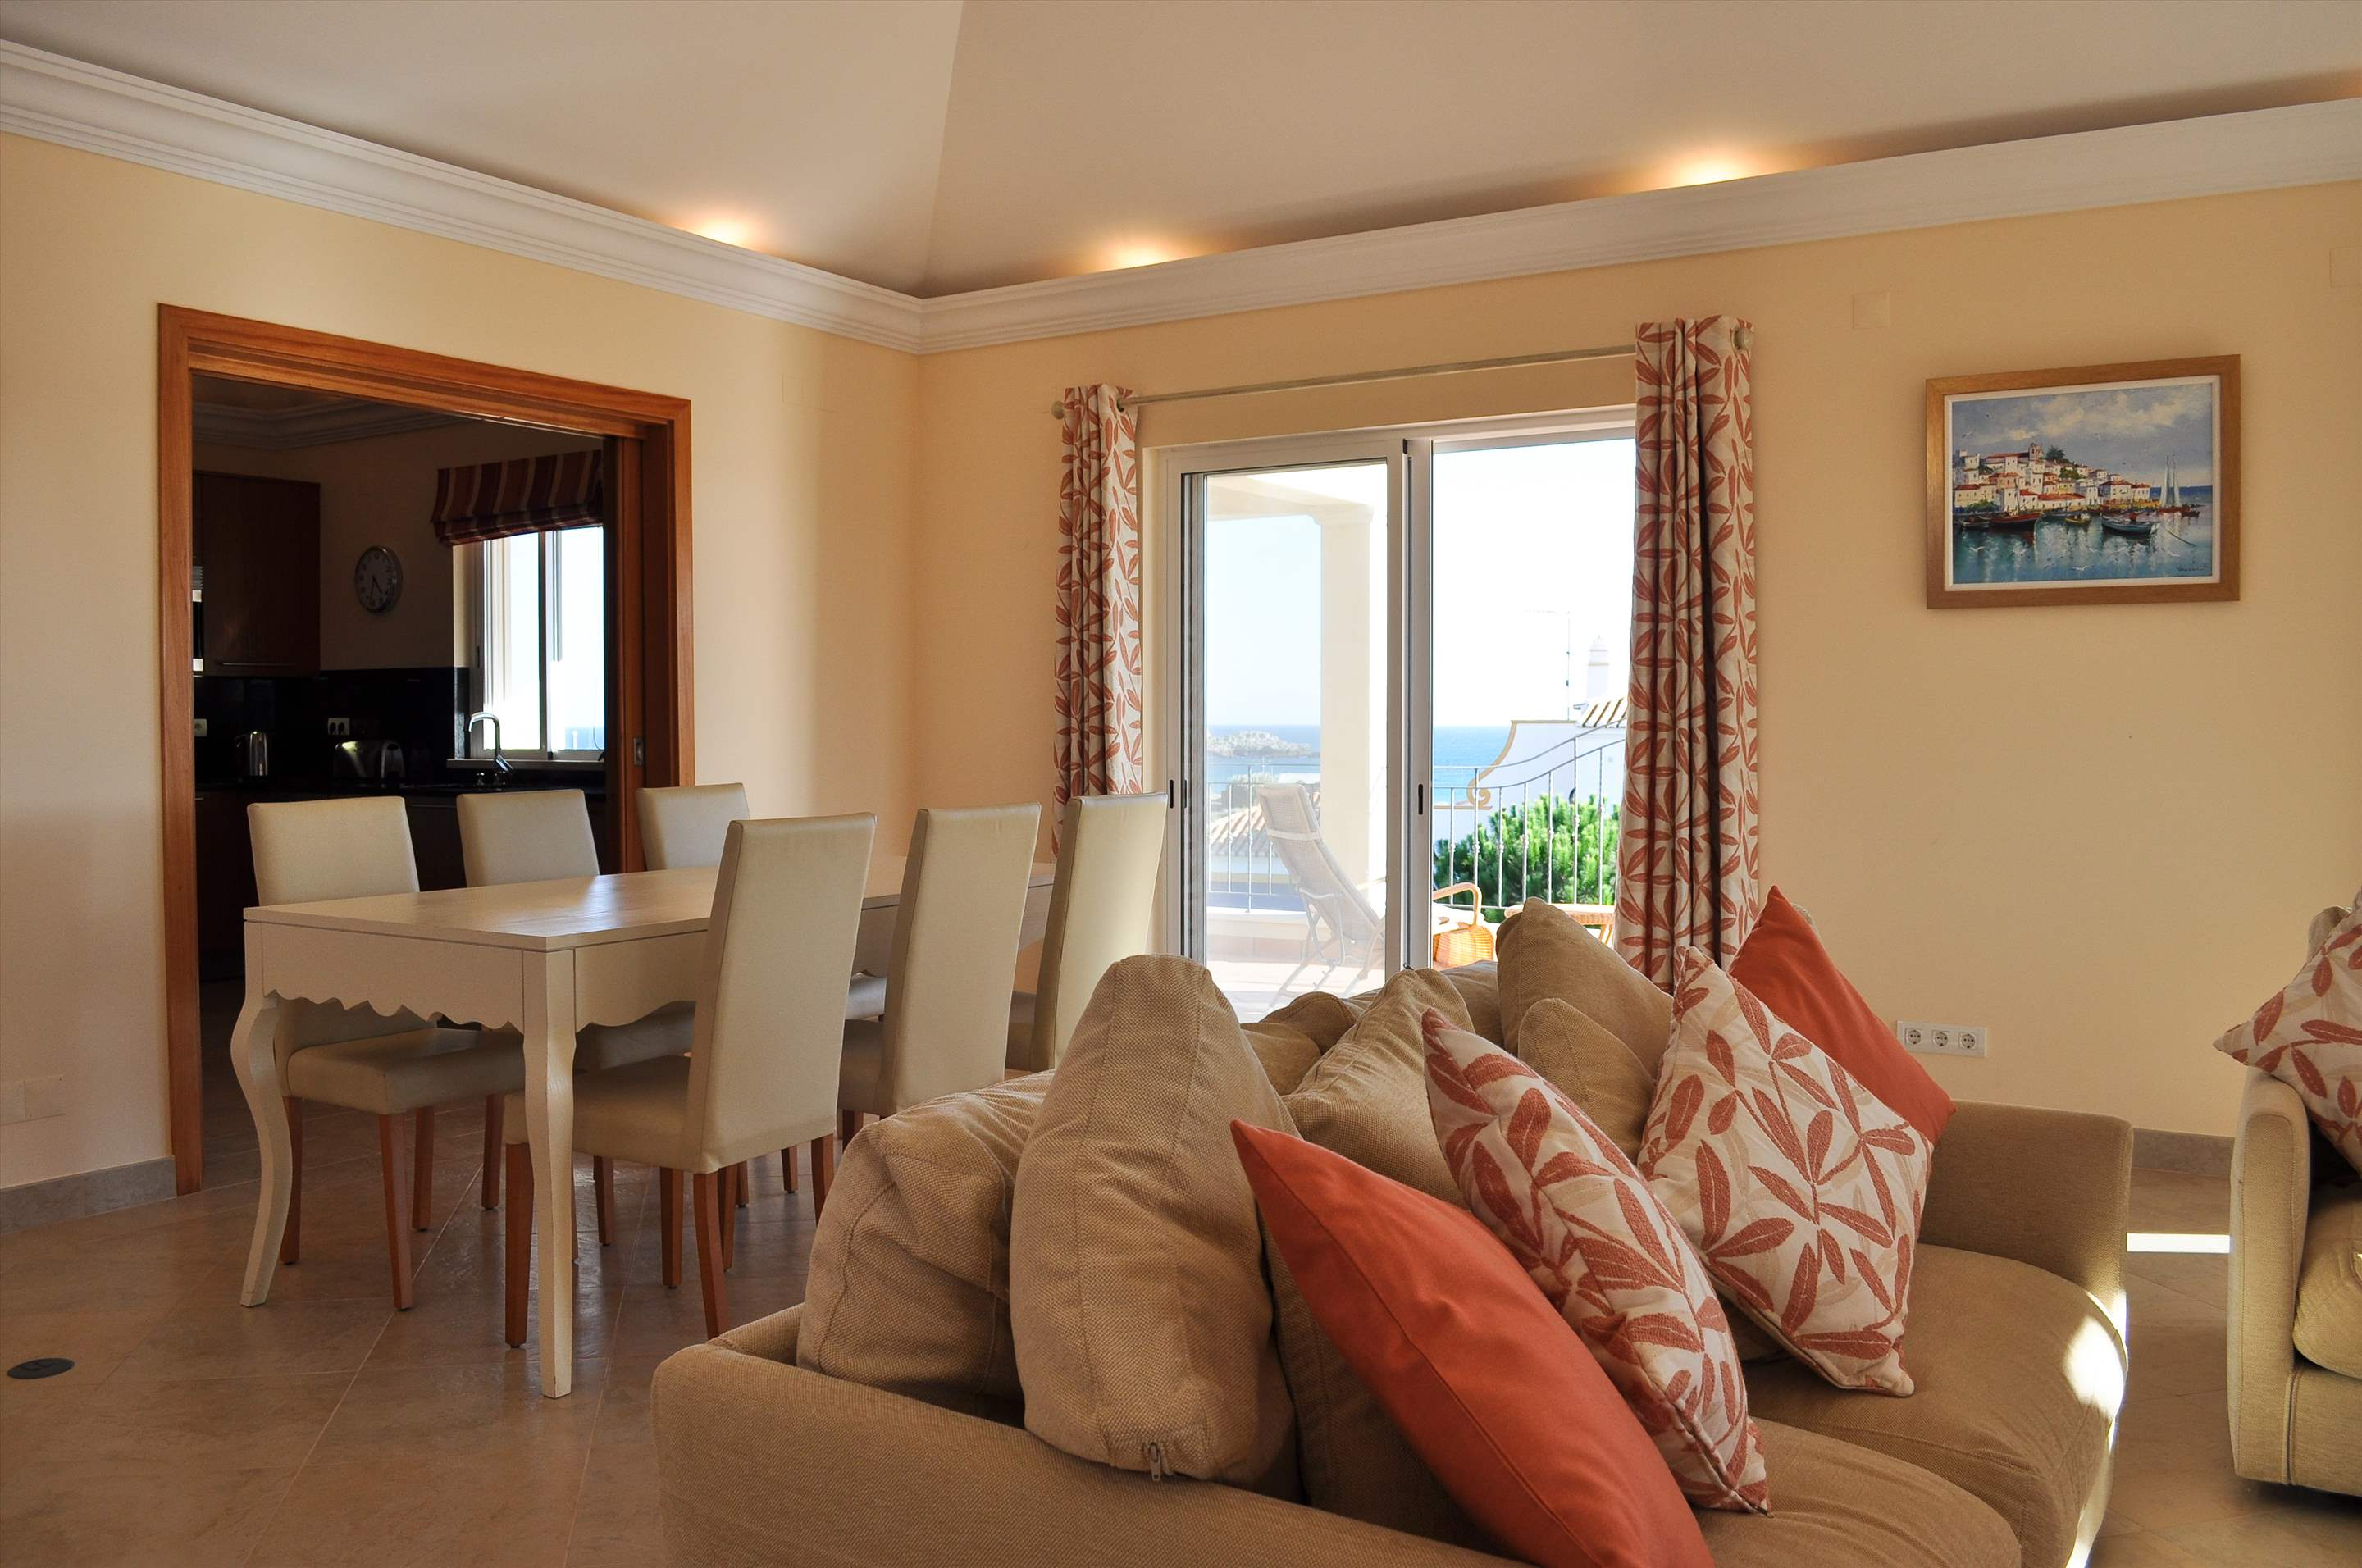 Martinhal Luxury Villa No.32, Three bedroom villa, 3 bedroom villa in Martinhal Sagres, Algarve Photo #7